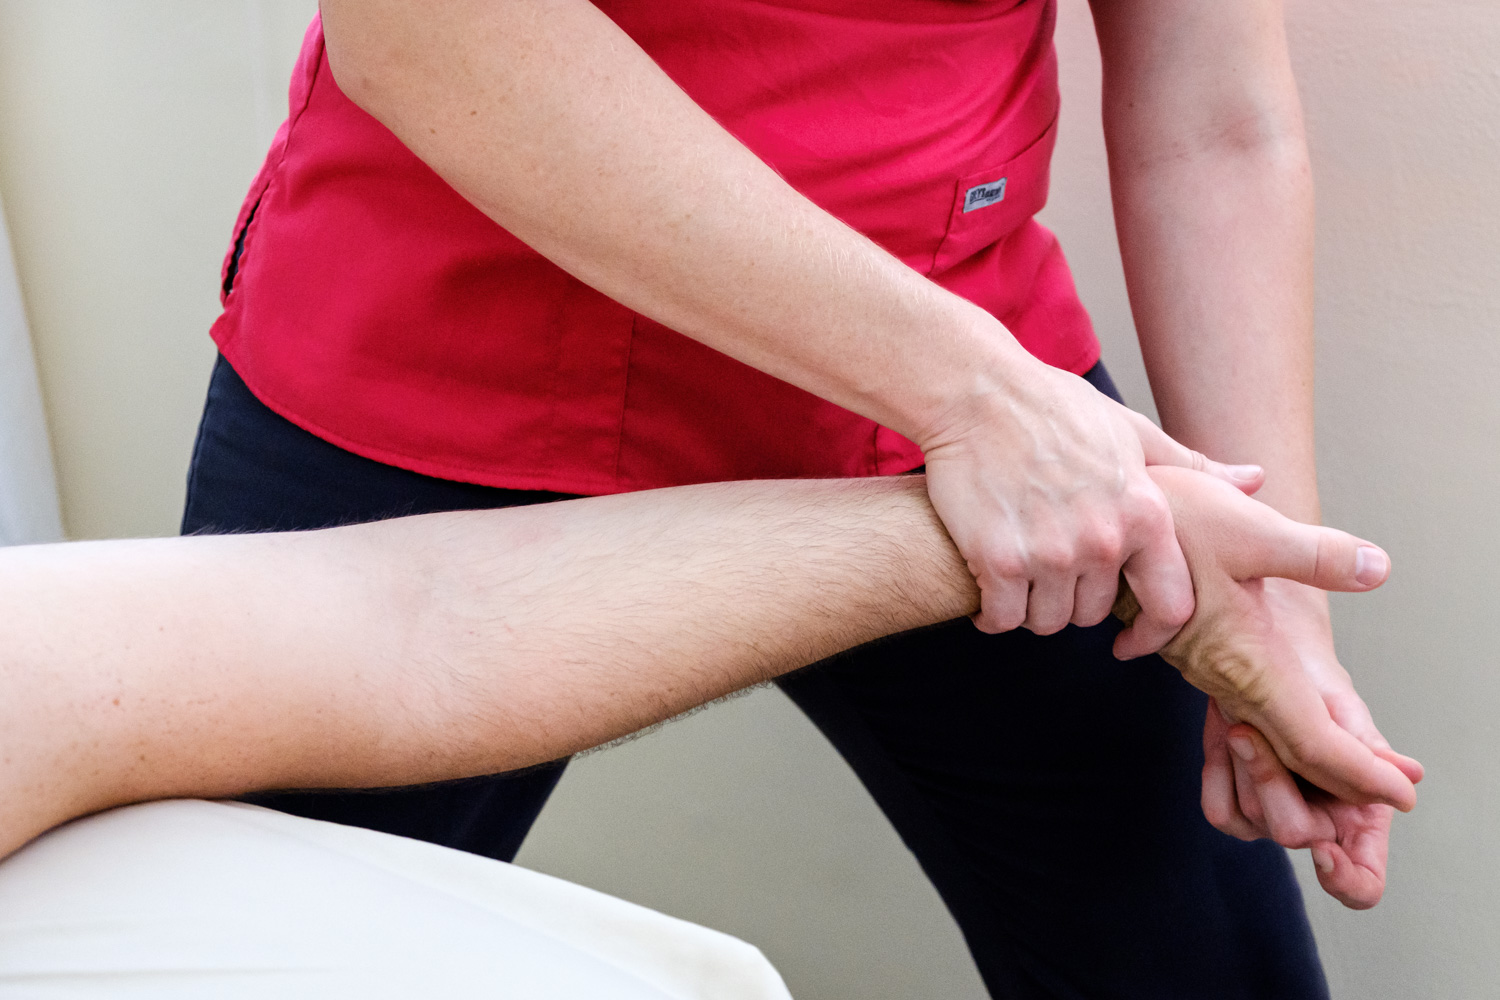 Female massage therapist stretching client's hand.